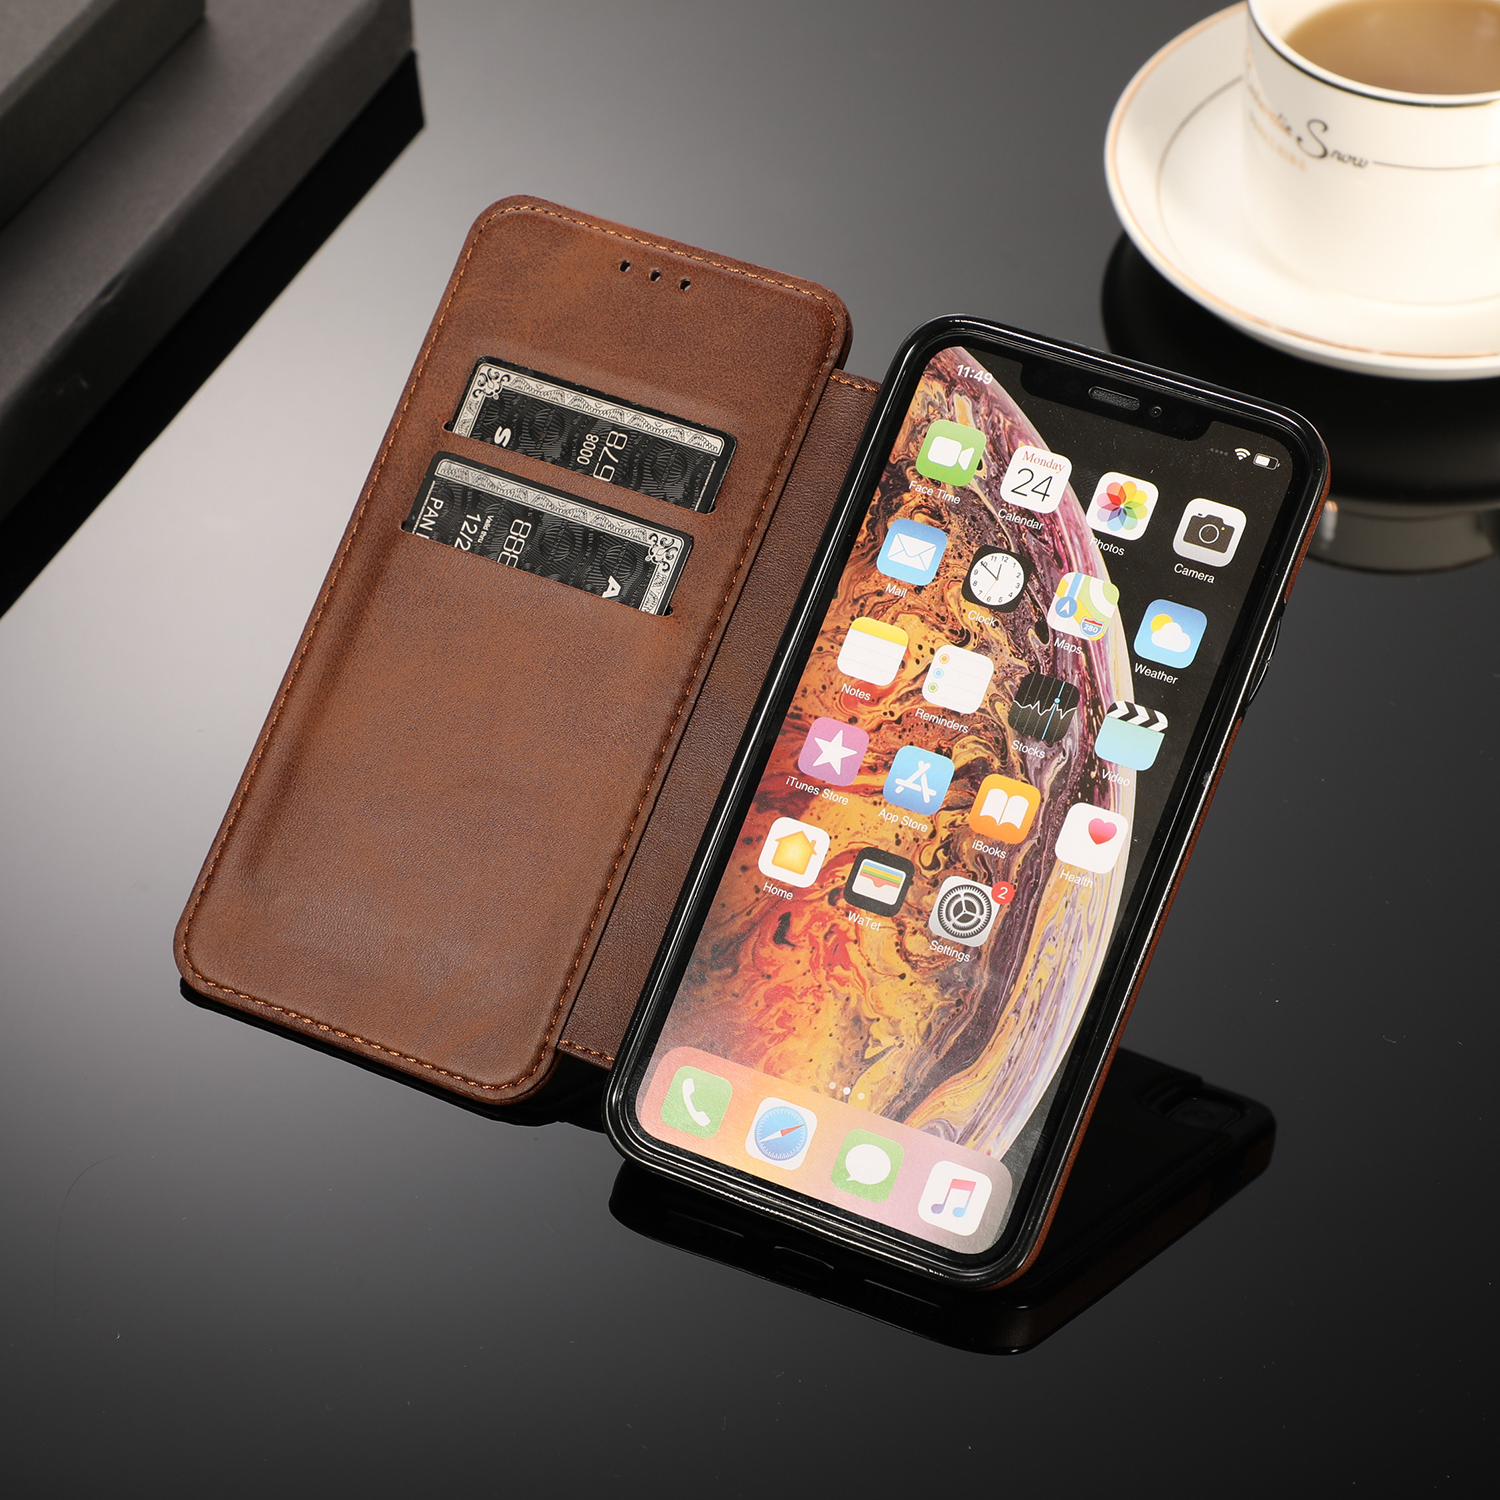 For iPhone 6 S 7 8 Plus XS Max XR Magnet leather flip Case For iPhone 6s 7plus 8plus Card Slot Wallet Cover Phone Bag in Fitted Cases from Cellphones Telecommunications